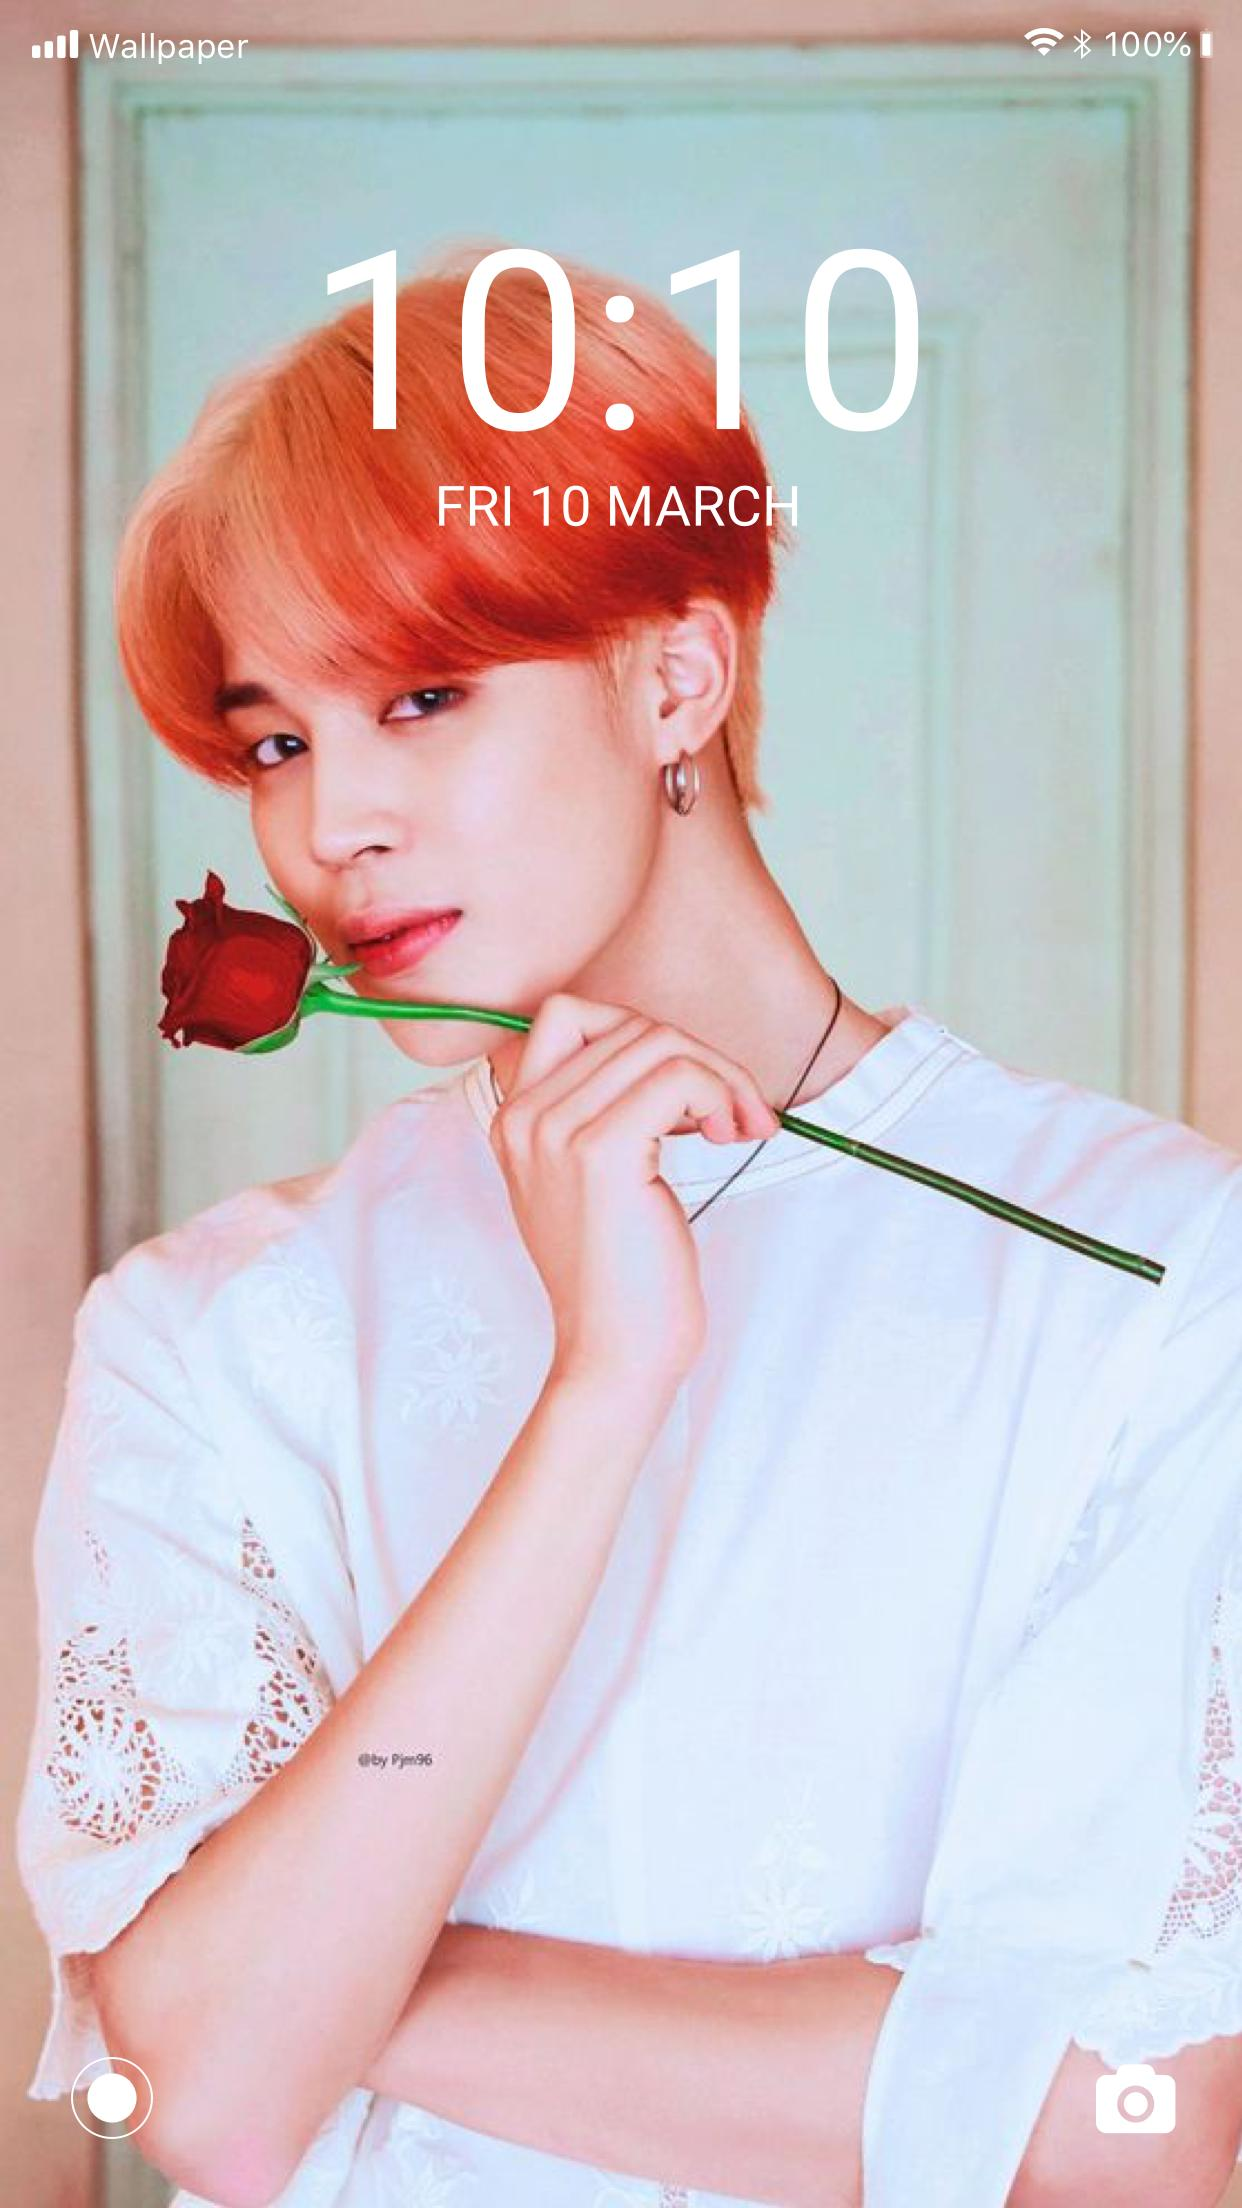 5000 Bts Wallpaper Hd Kpop 2019 For Android Apk Download